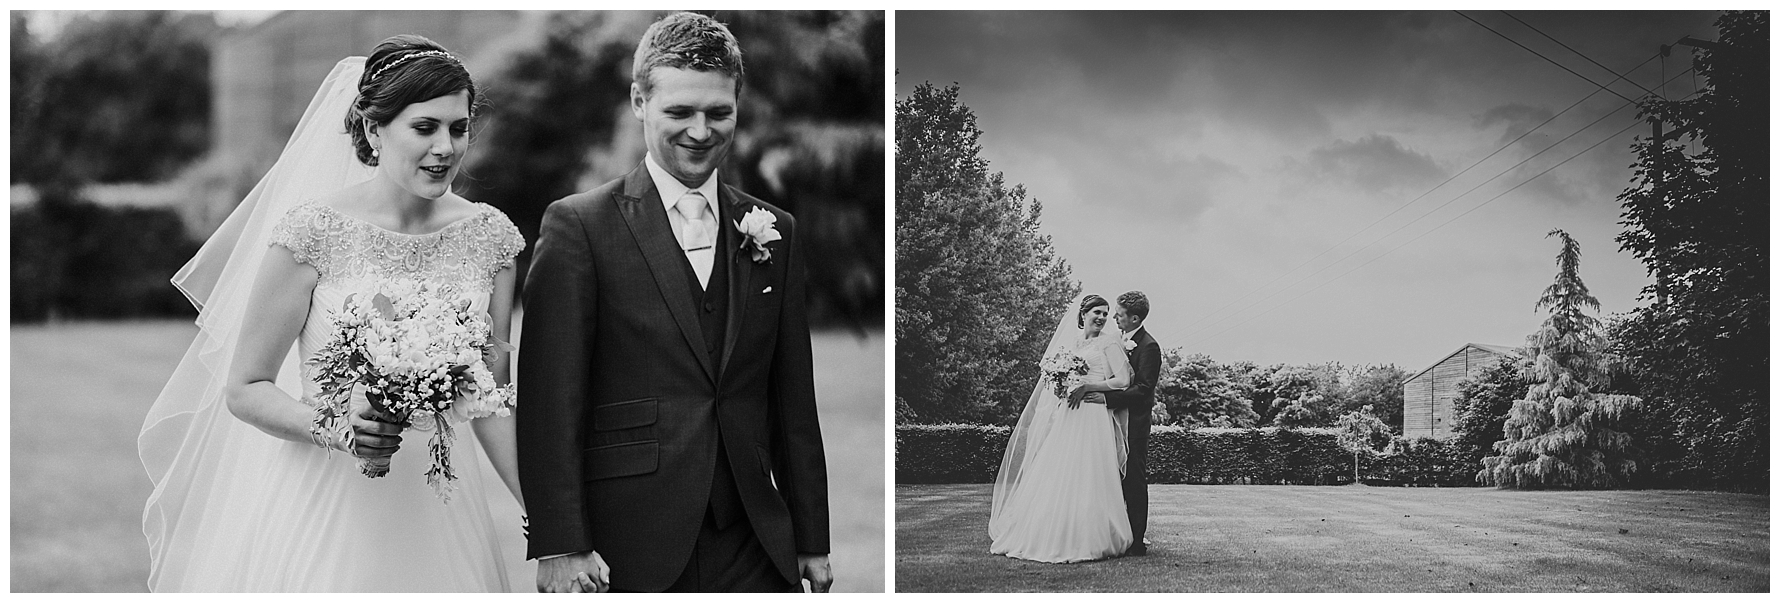 cheshire-unposed-documentary-wedding-photography-belmount-hall